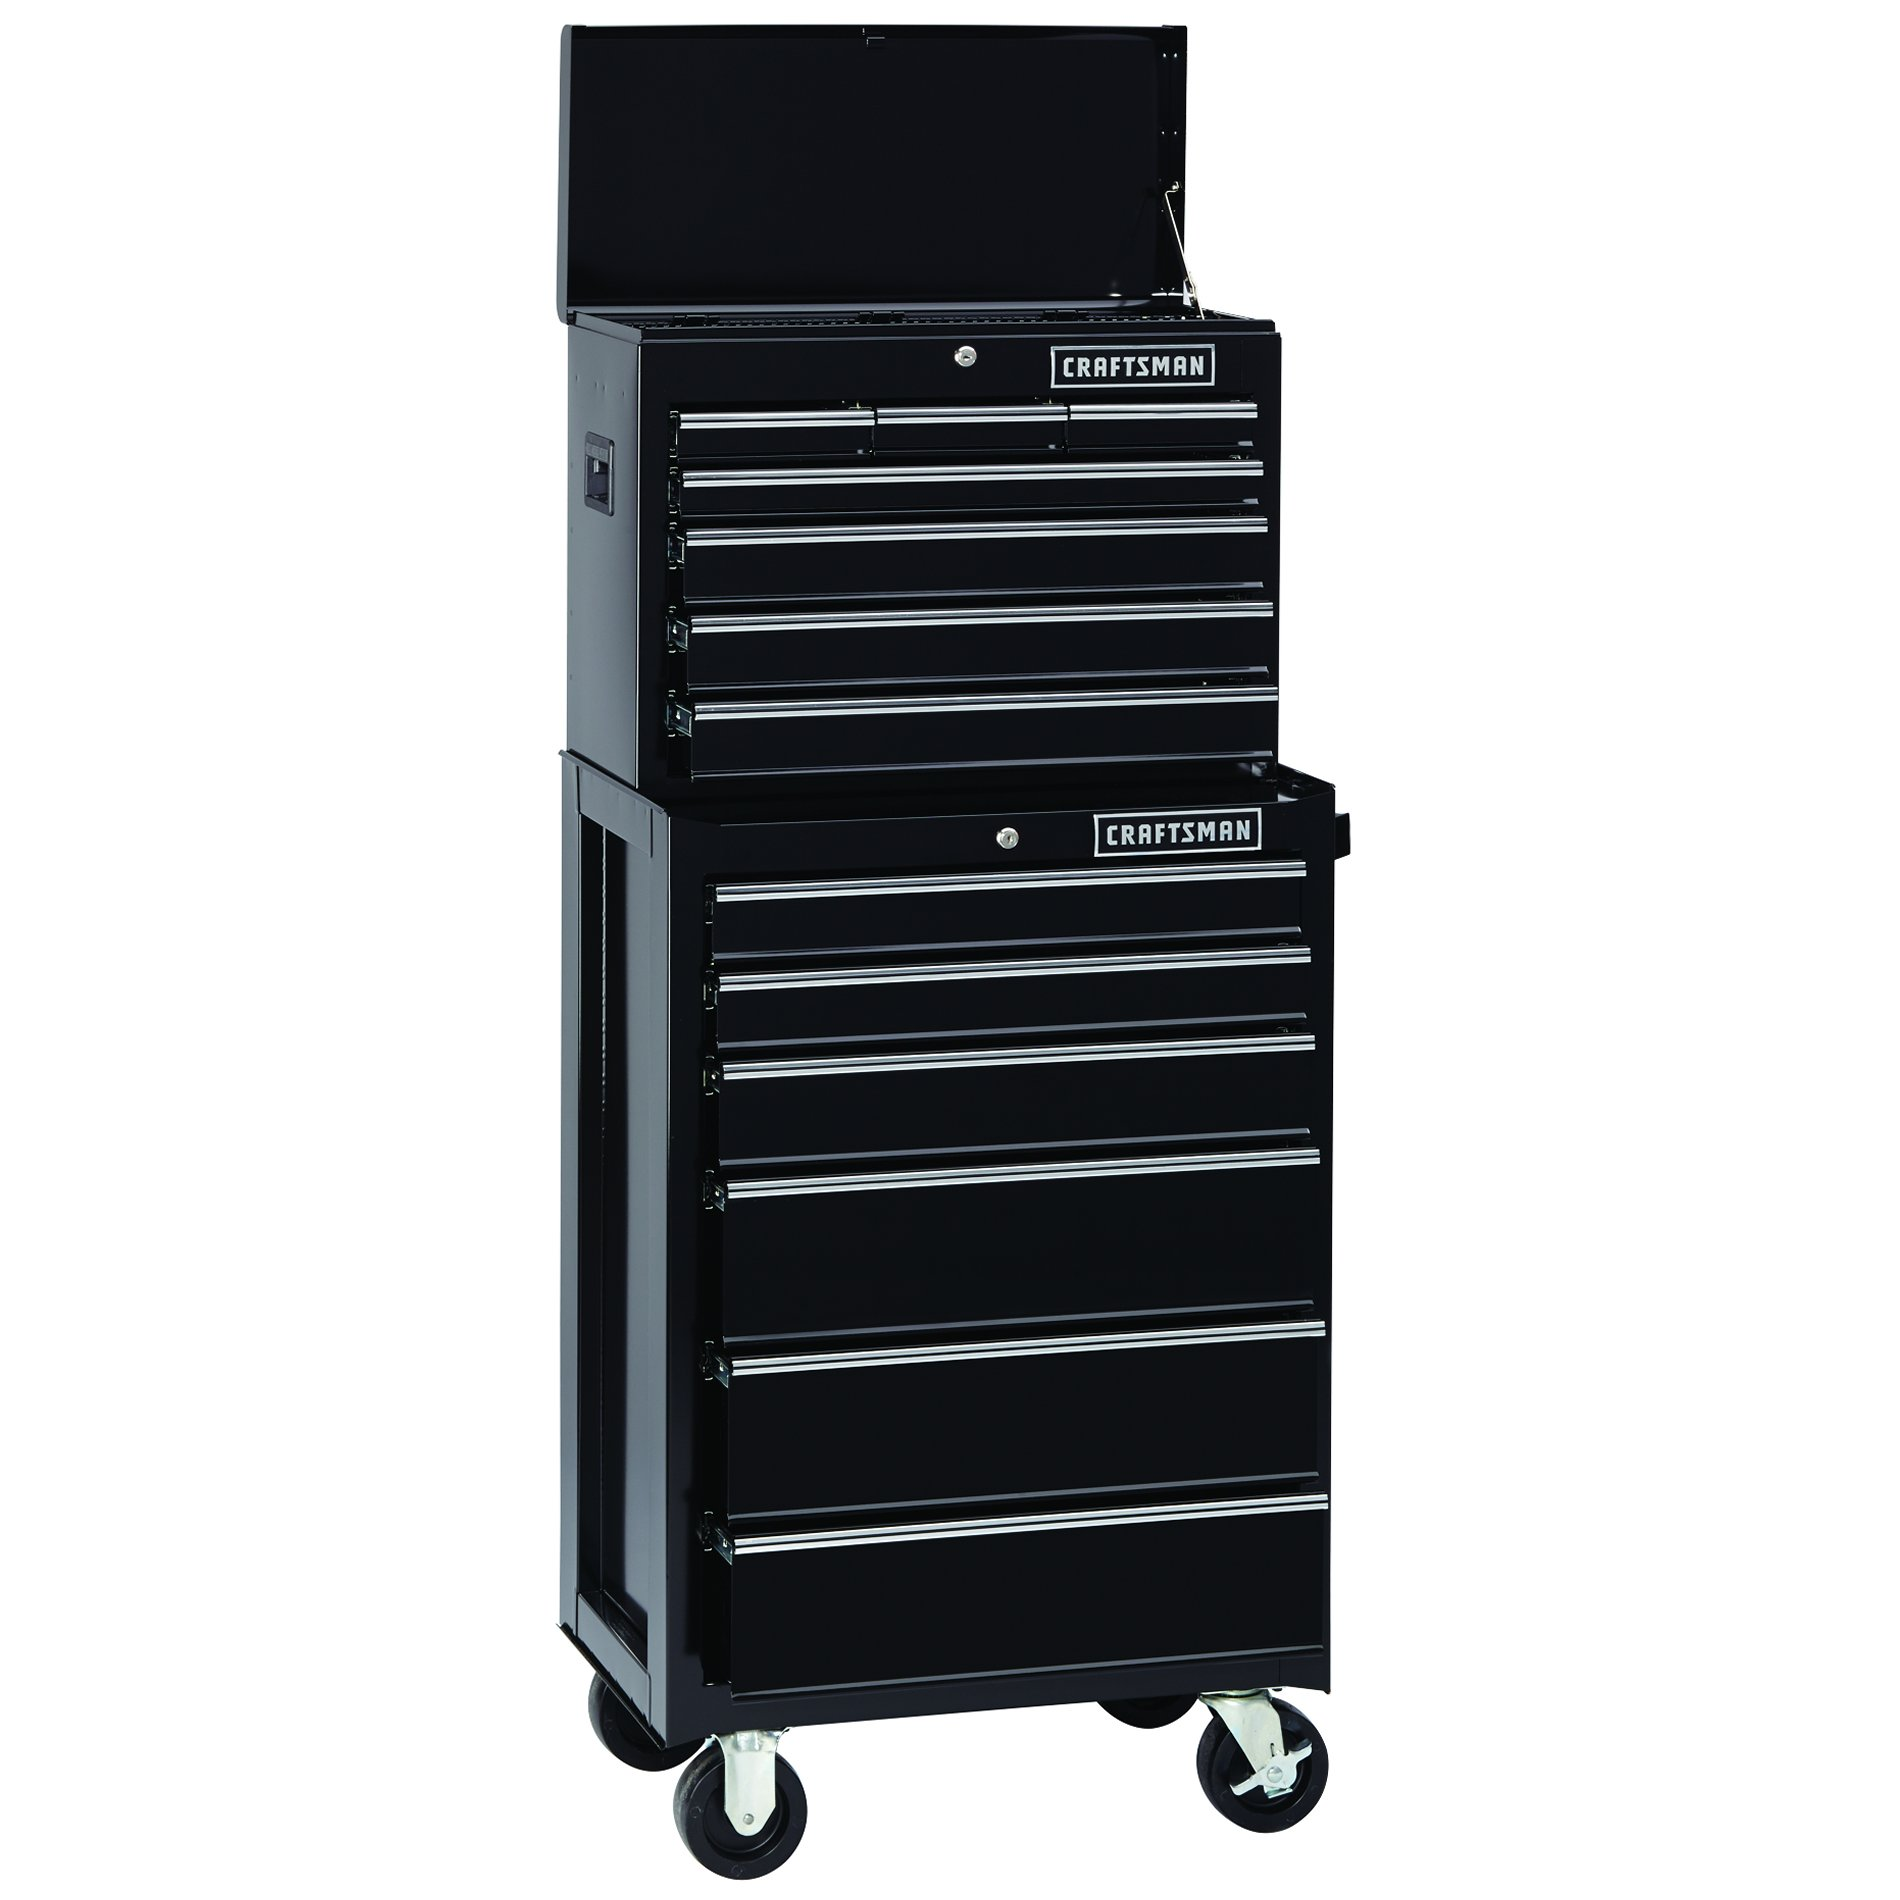 7-Drawer Heavy-Duty Ball-Bearing Top Chest - Black